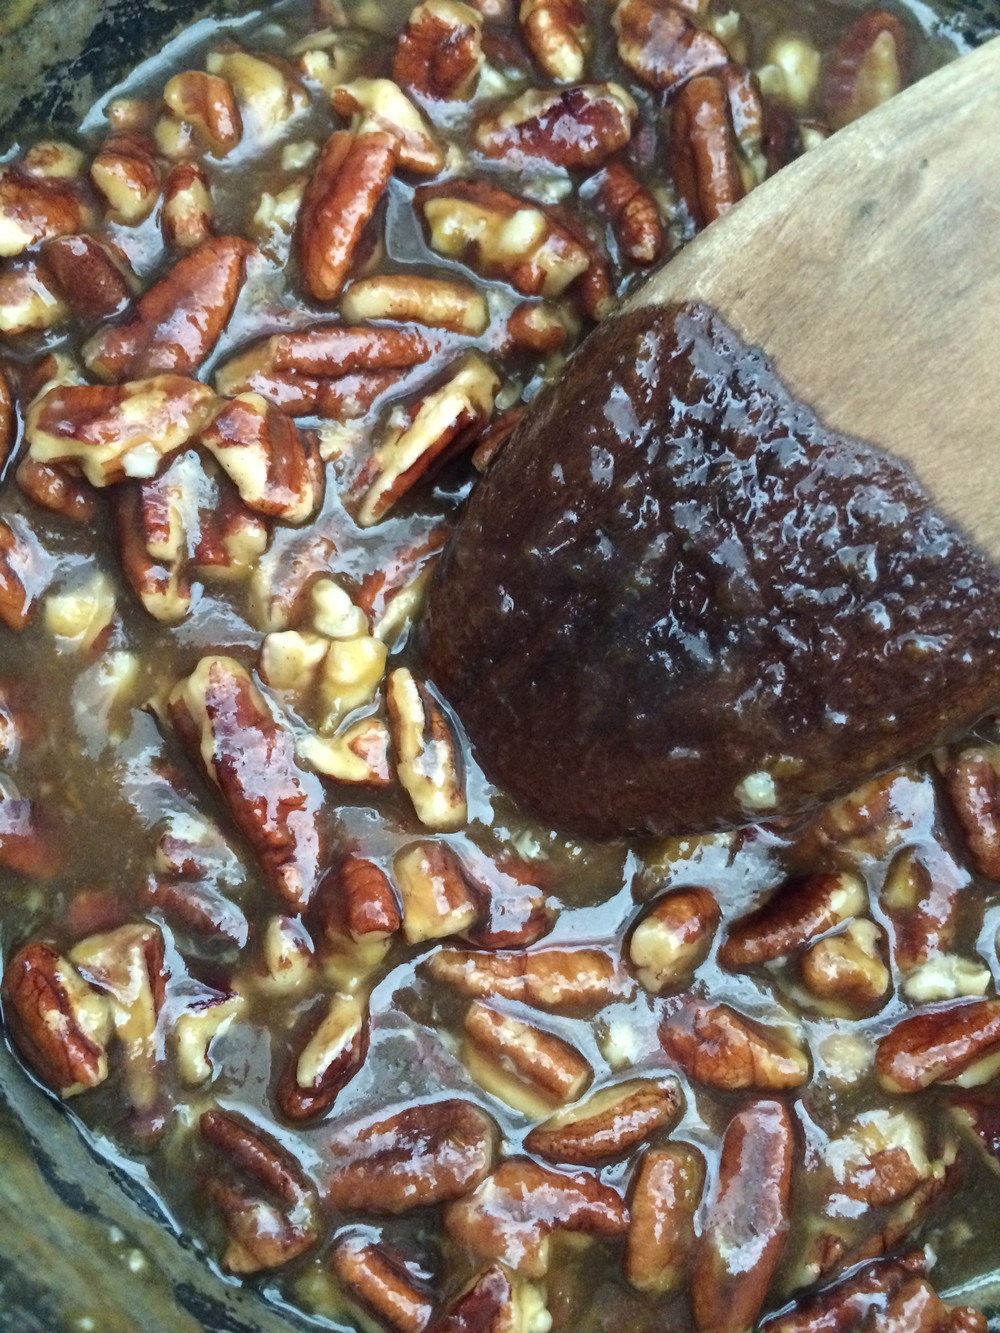 The pecan pie filling